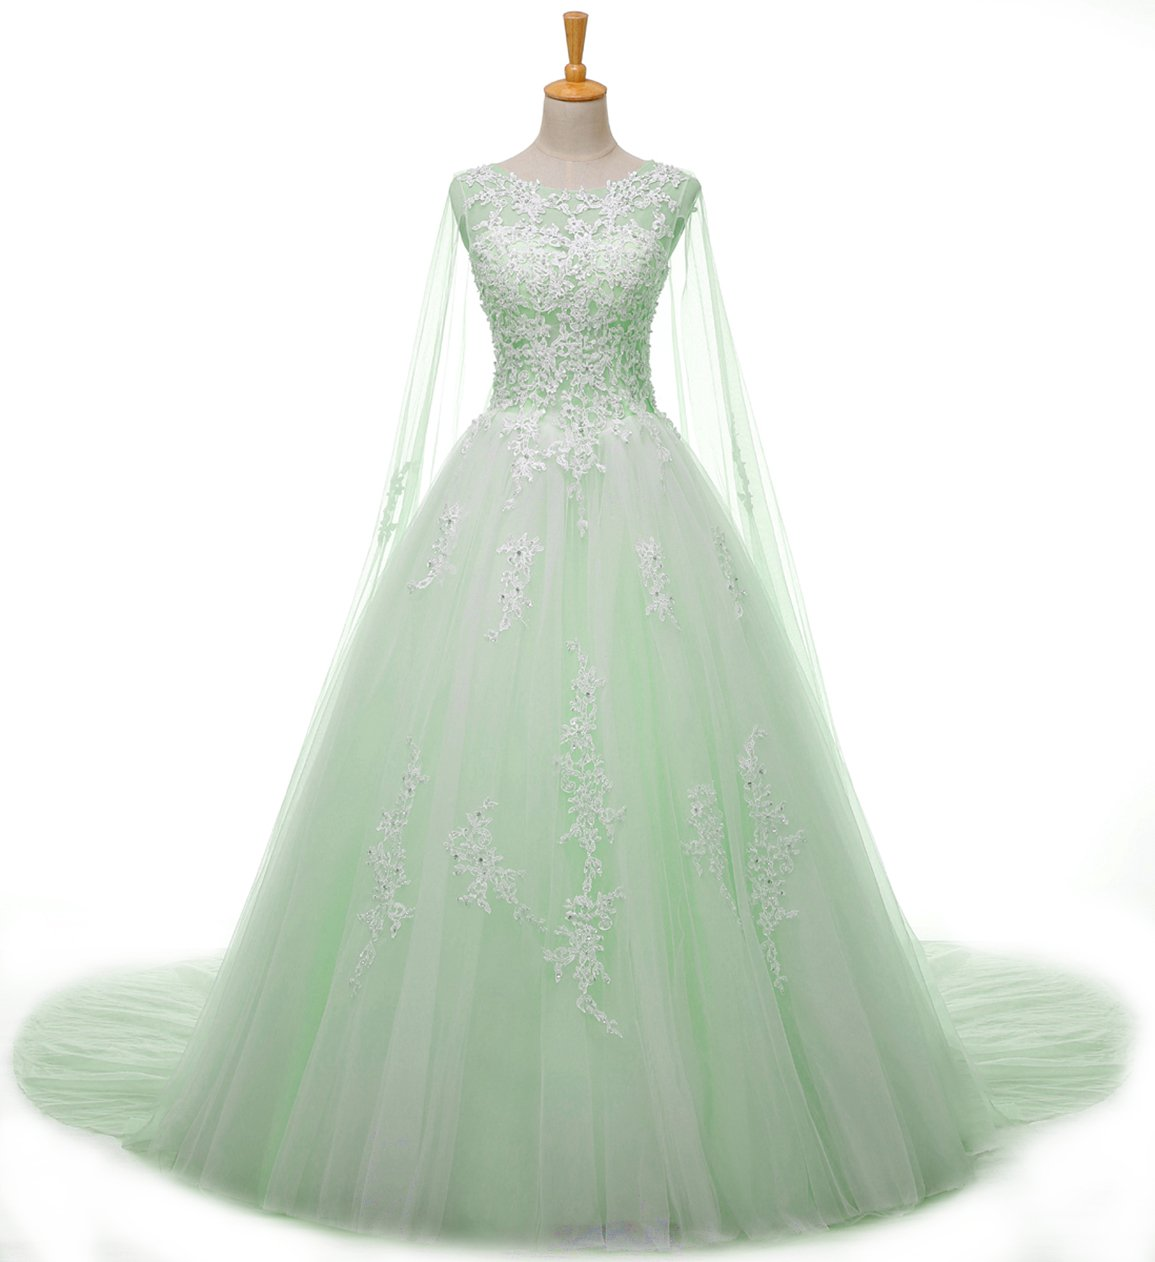 Women's Long A Line Tulle Wedding Dress Lace Applique Evening Gowns Green US8